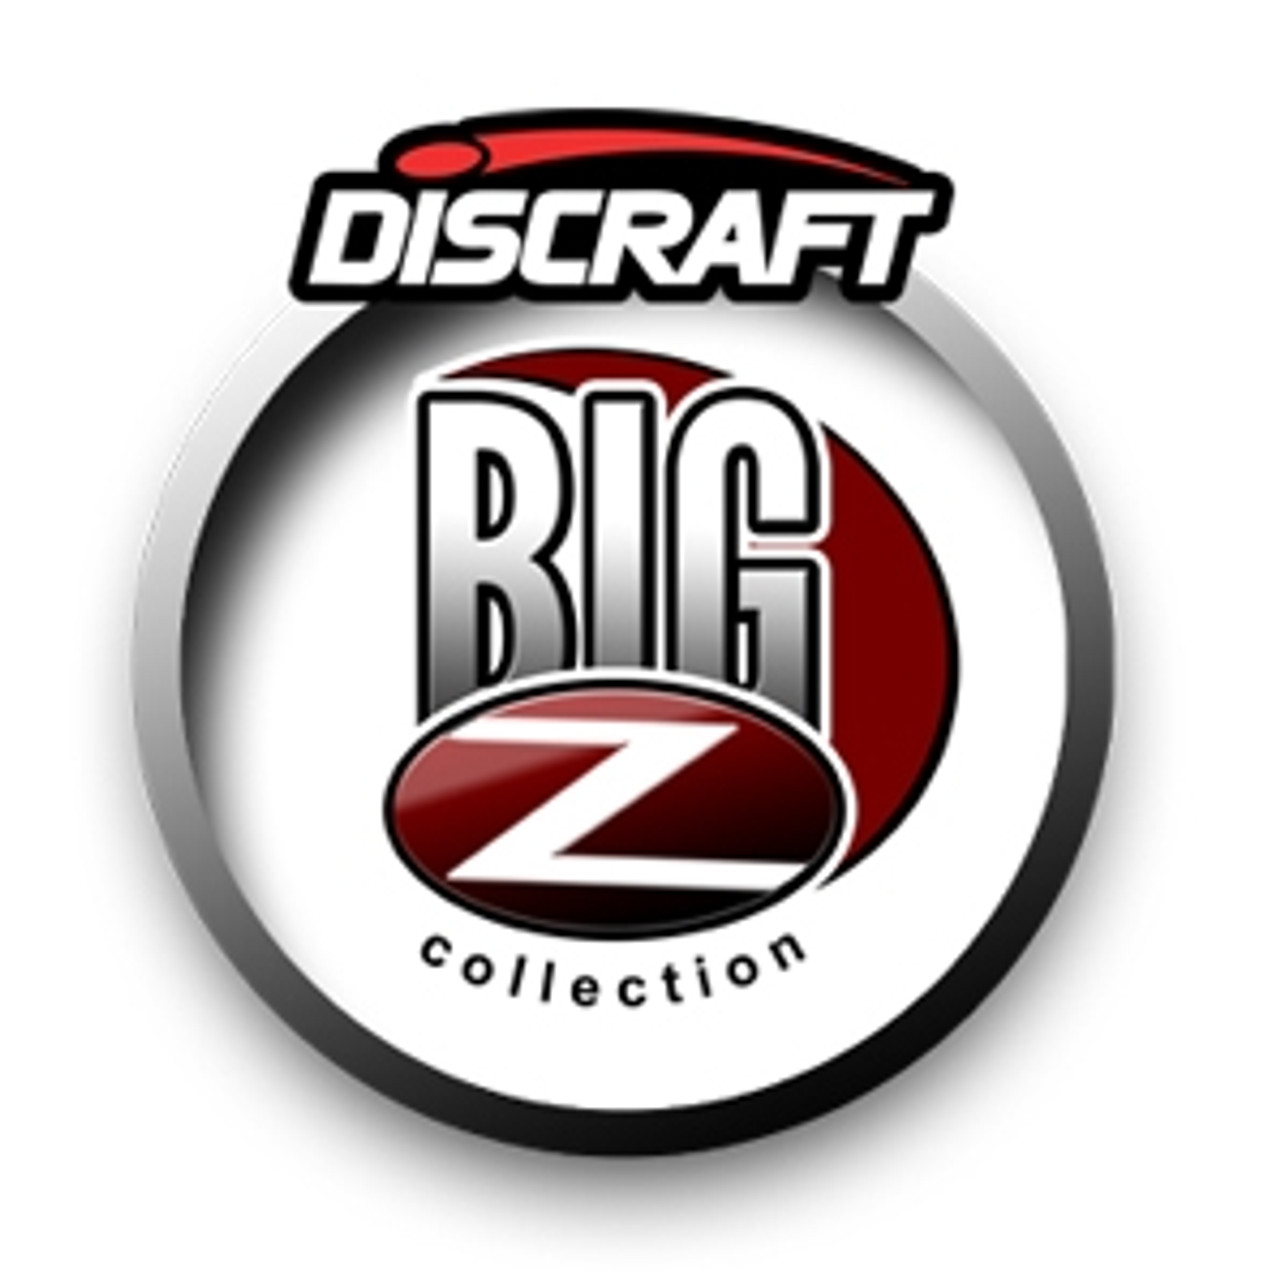 Big Z Collection